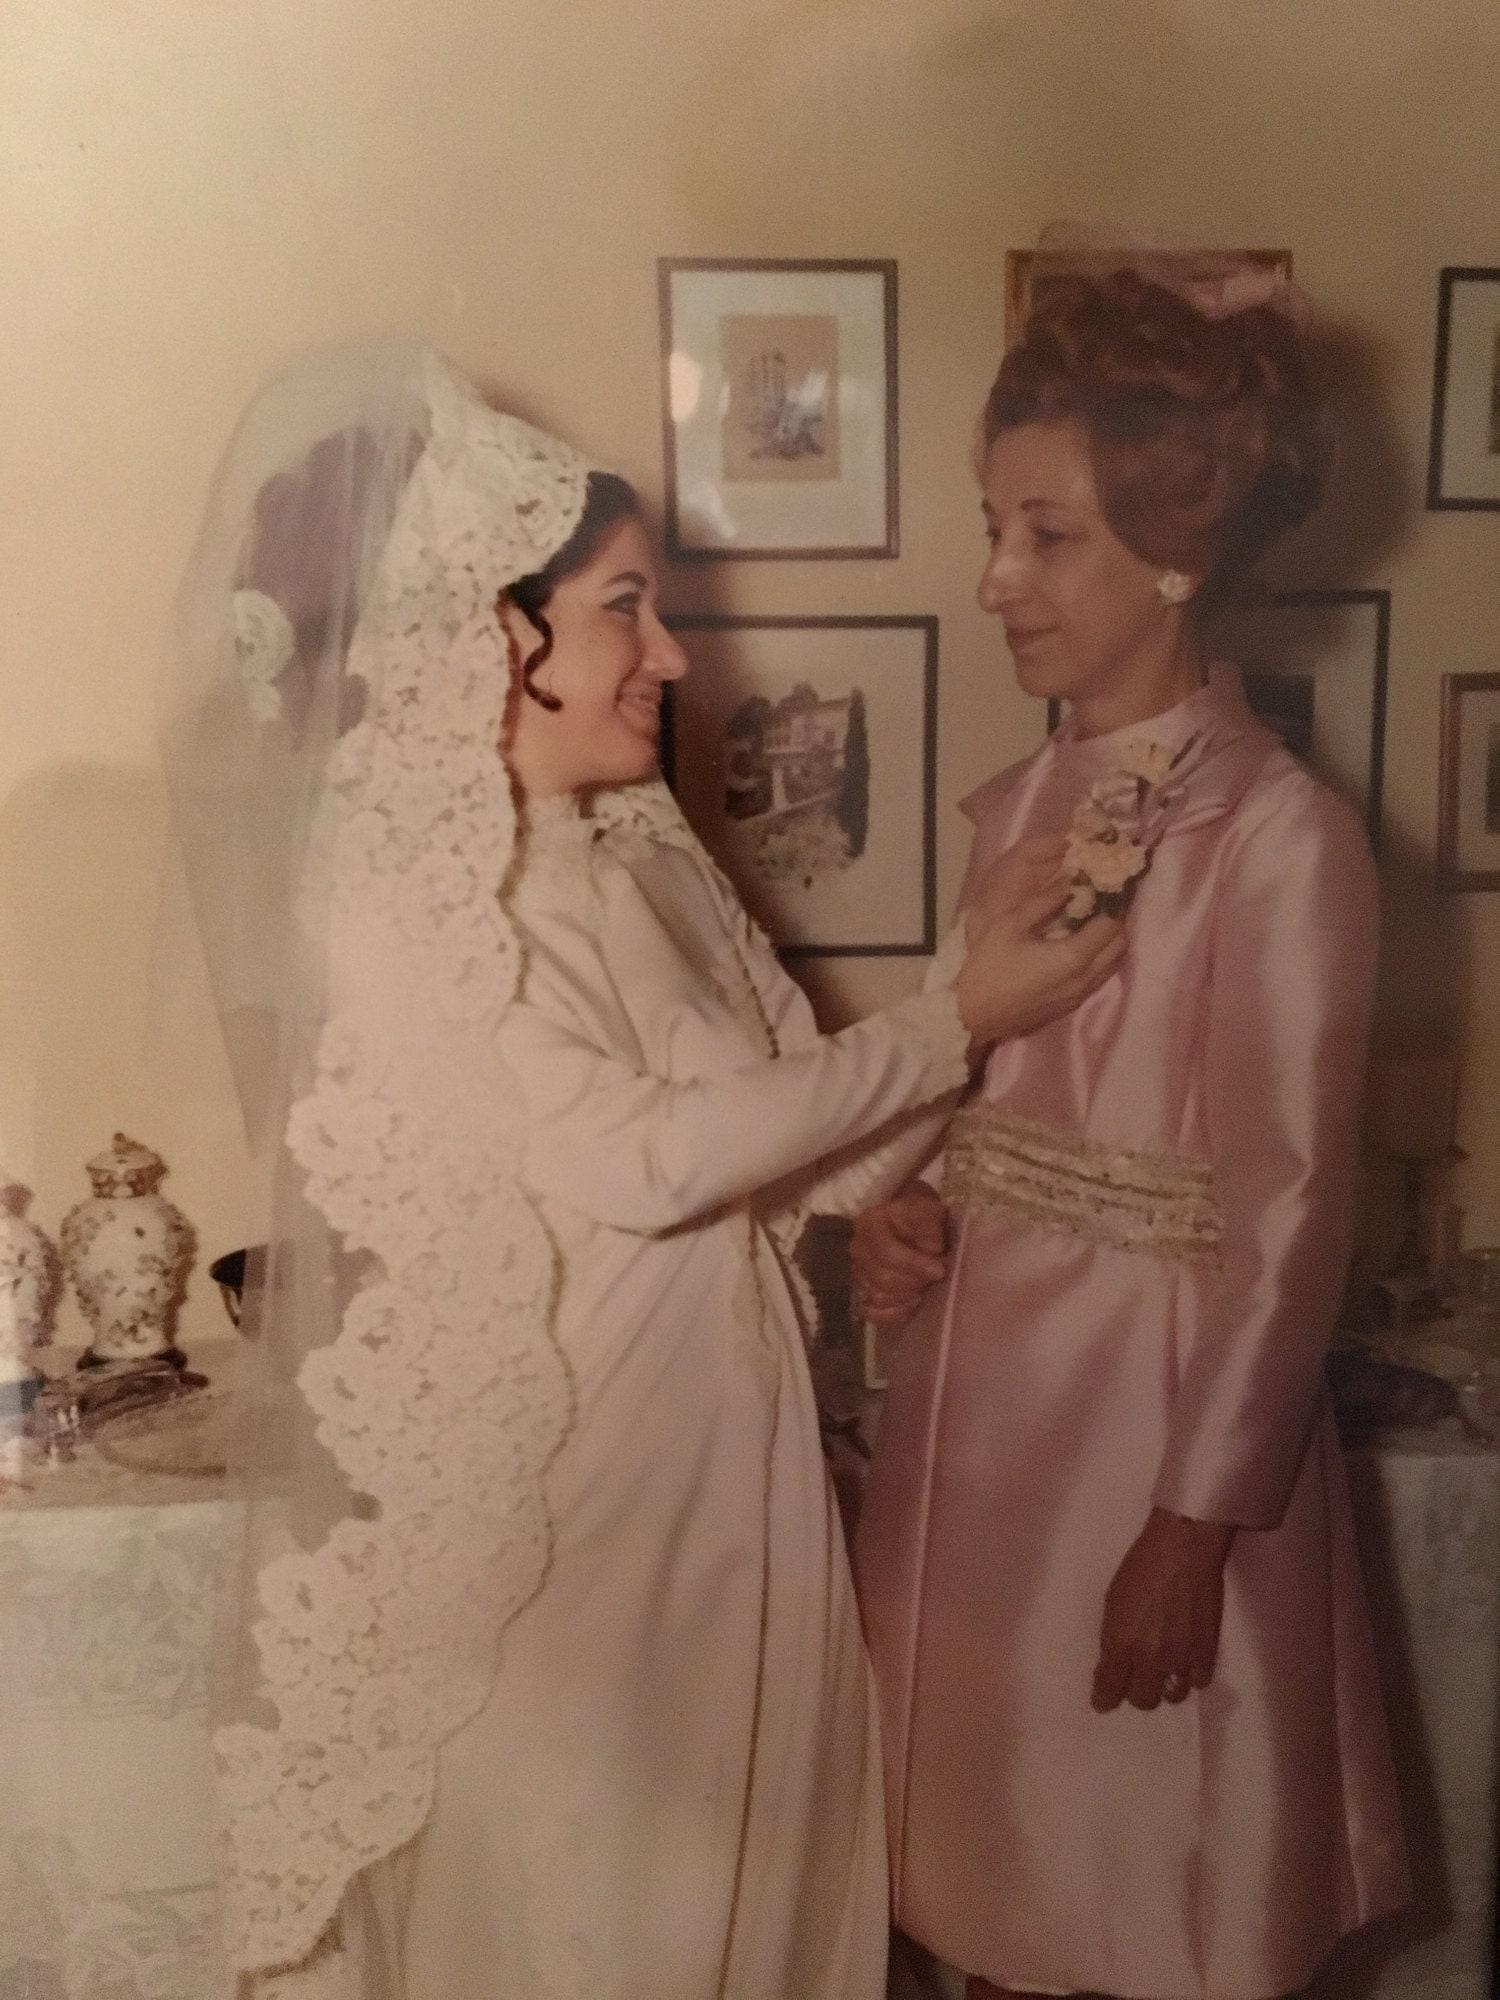 My Yaya, Helen Hadges (on the right), when she was 49 in 1969 at my parents wedding. This was 10 years after her diagnosis.